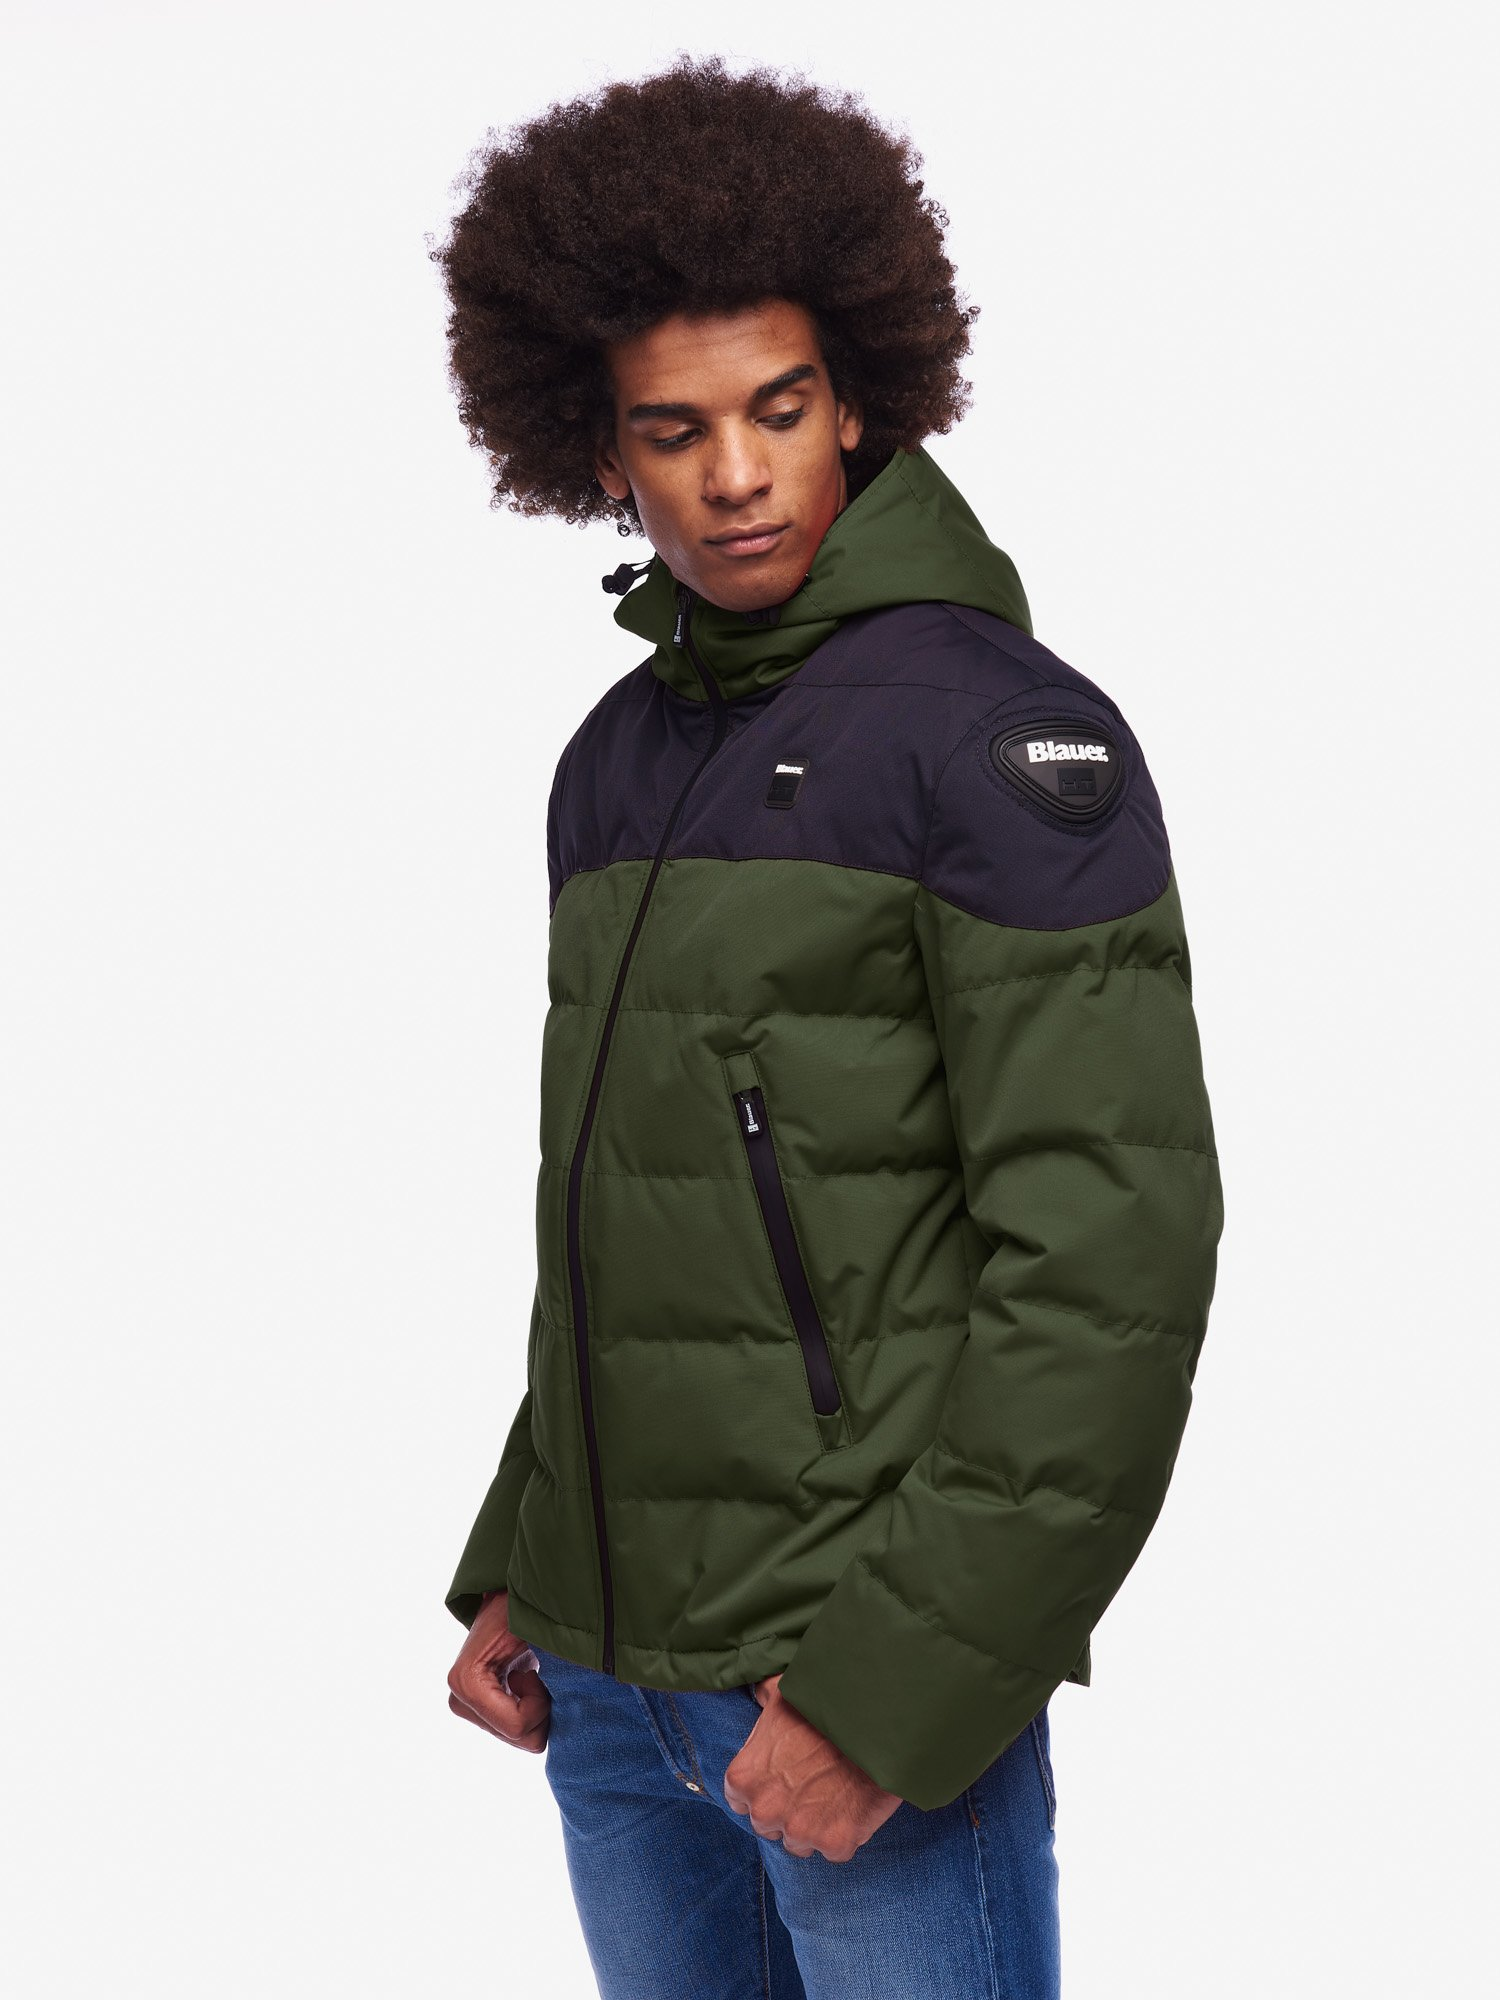 EASY WINTER MAN 2.0 - Blauer